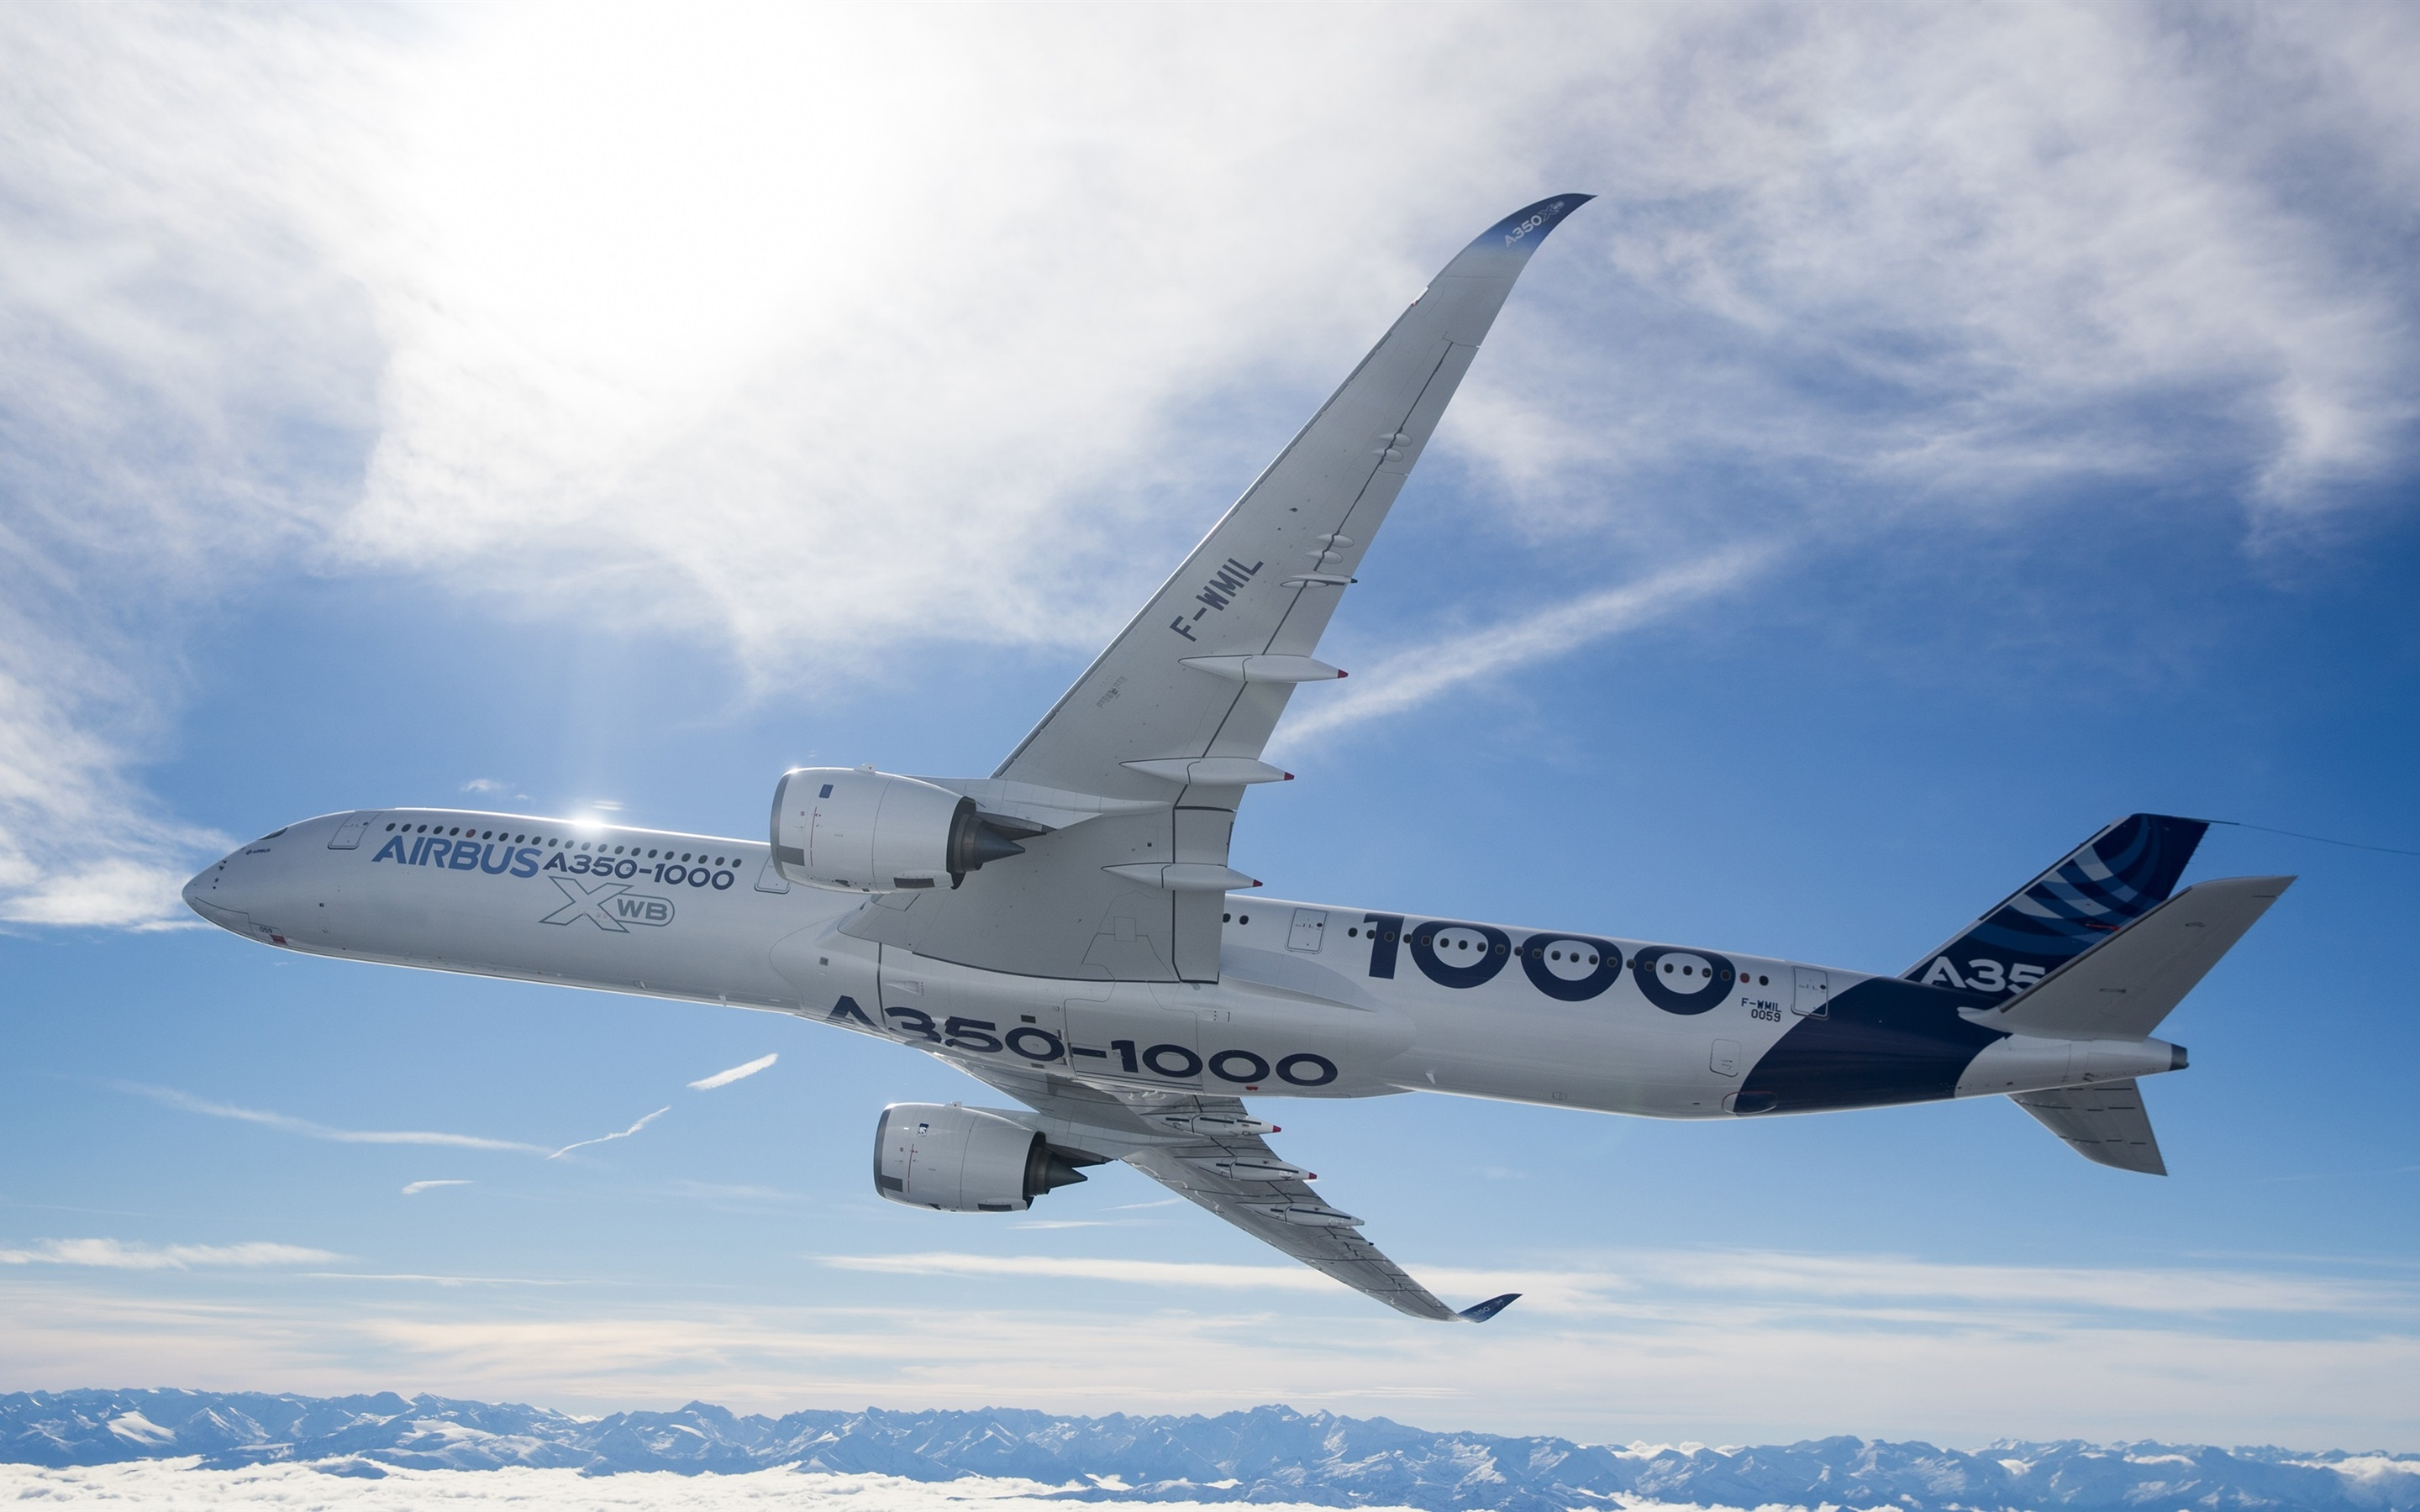 Wallpaper Airbus A350 1000 Plane 2880x1800 Hd Picture Image